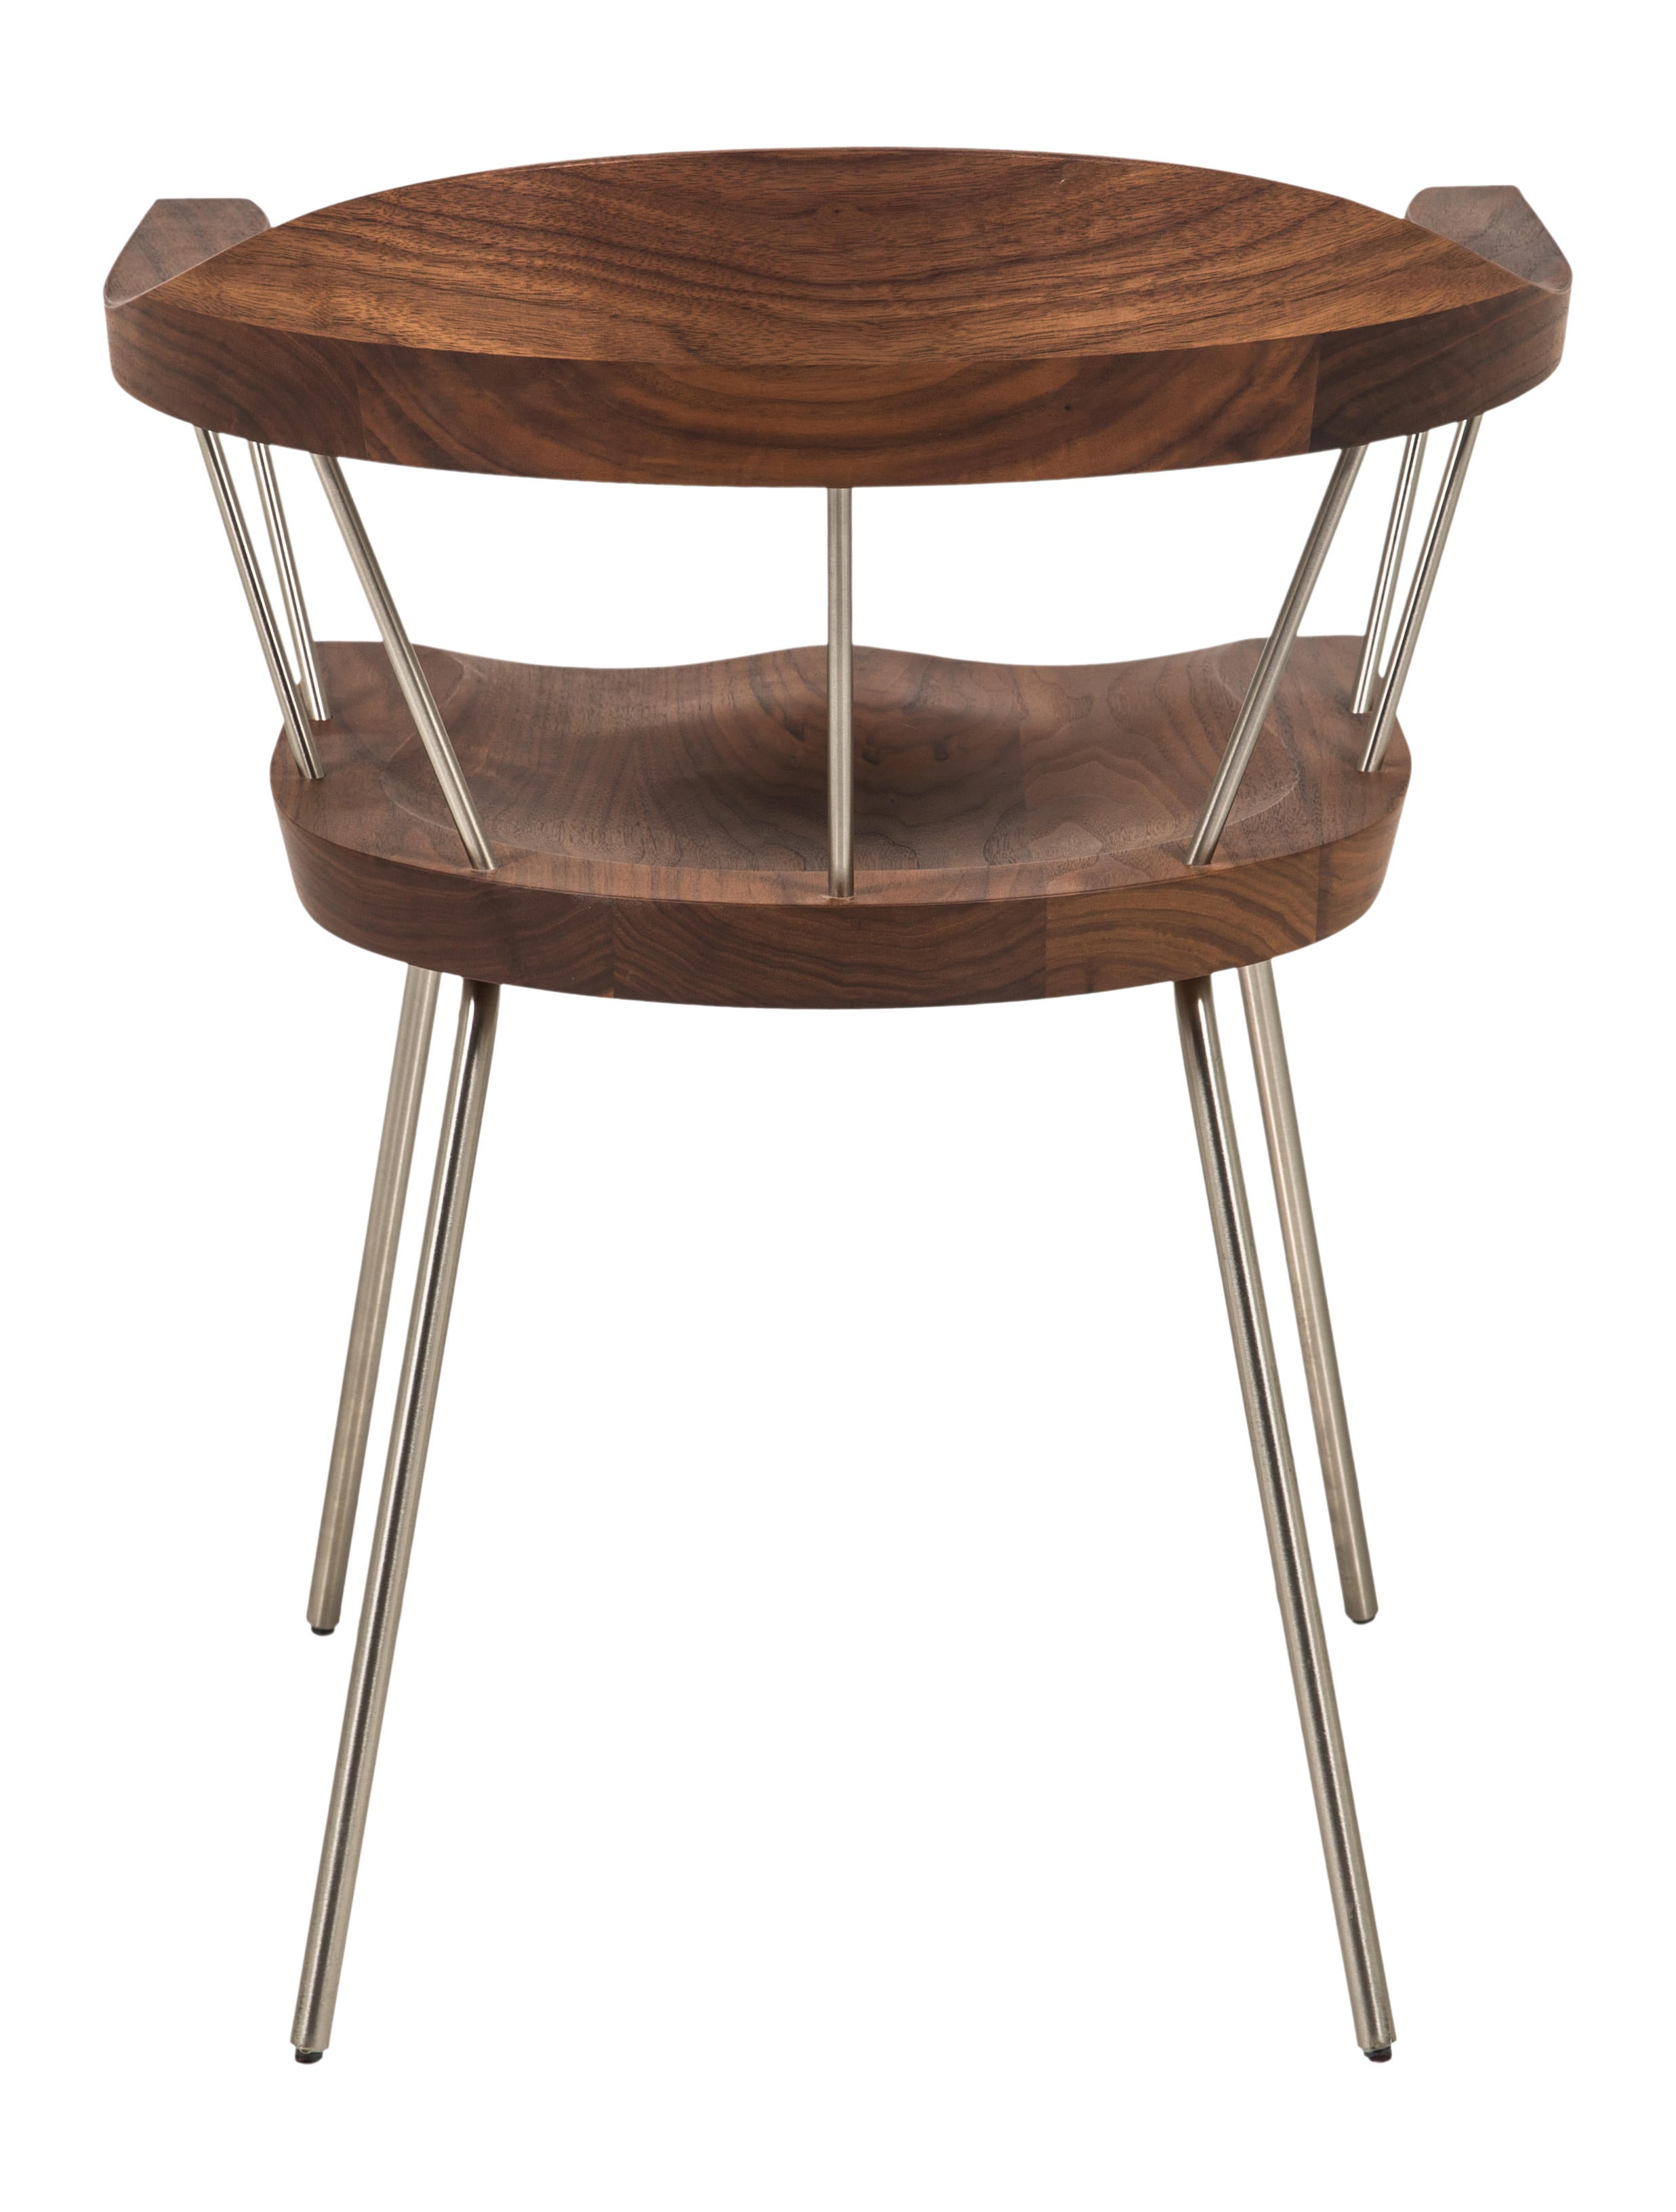 Bassamfellows spindle chair furniture furni20569 the for Furniture 80s band